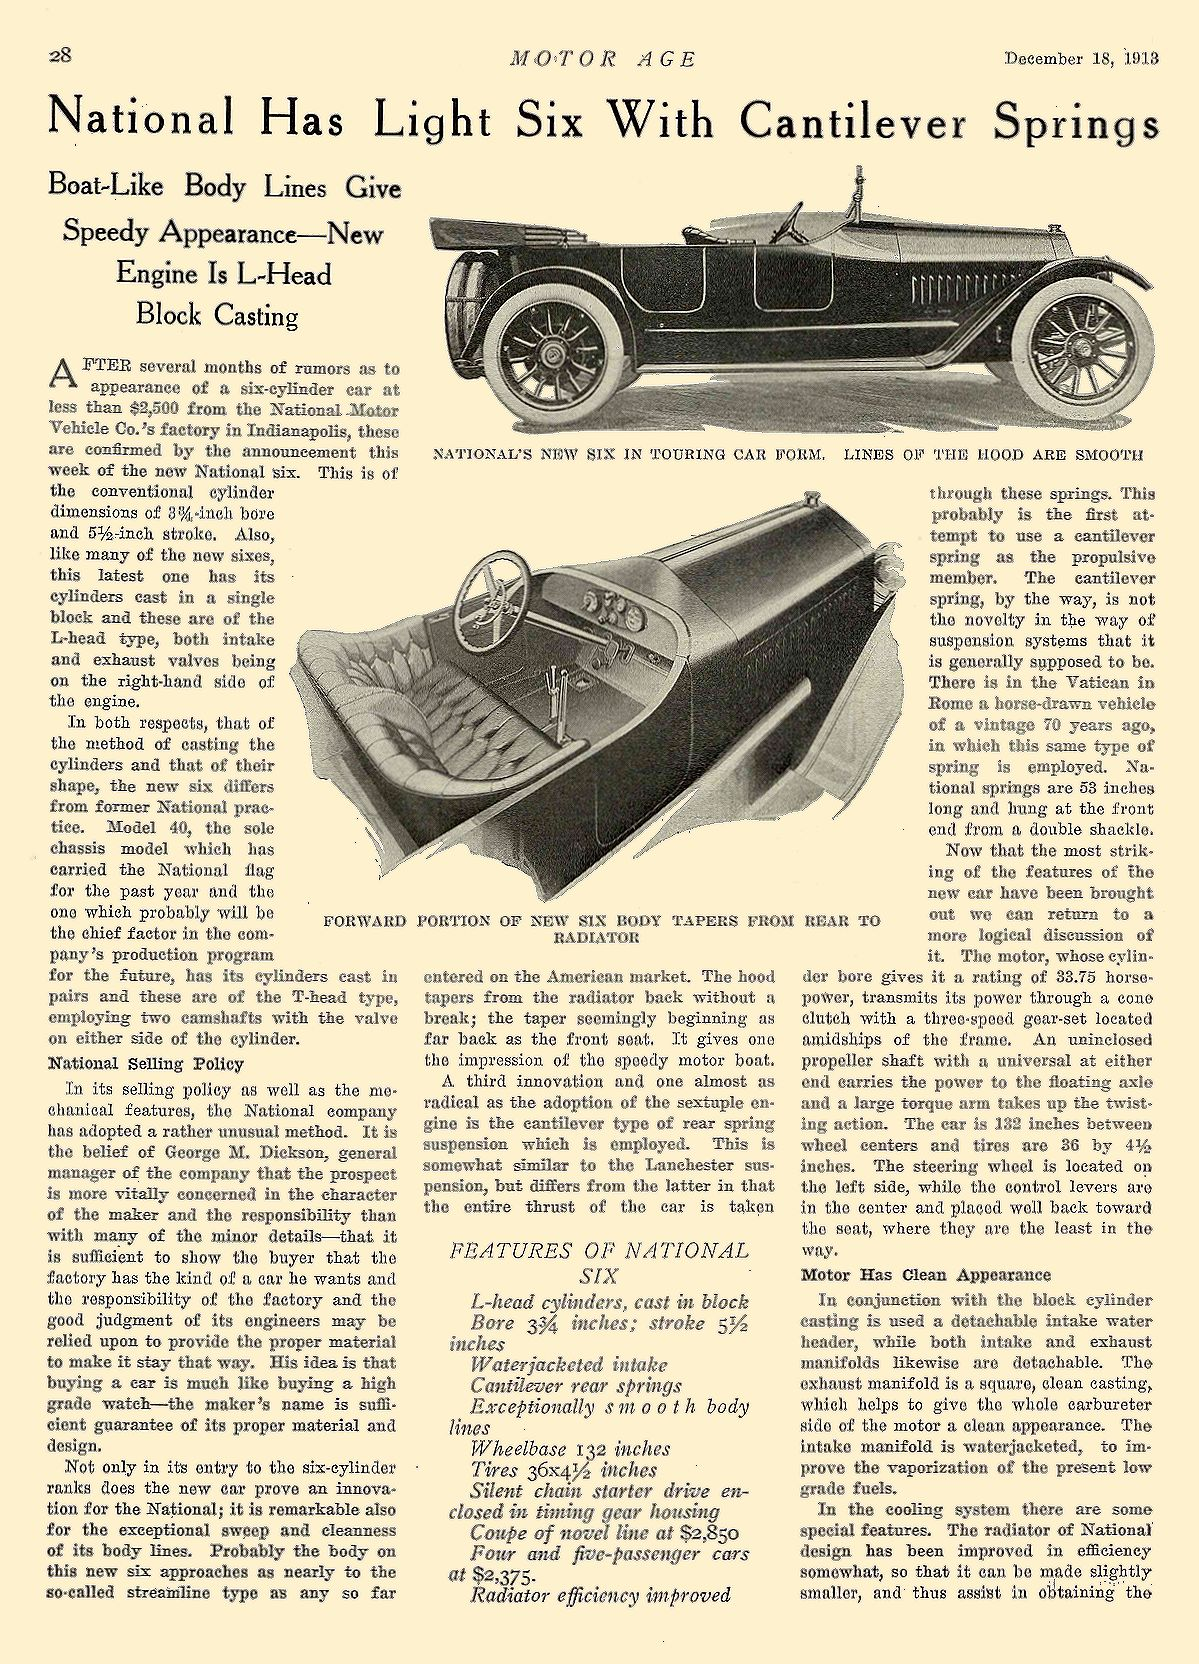 1913 12 18 NATIONAL National Has Light Six With Cantilever Springs National Motor Vehicle Co. Indianapolis, IND MOTOR AGE December 18, 1913 8.25″x12″ page 28